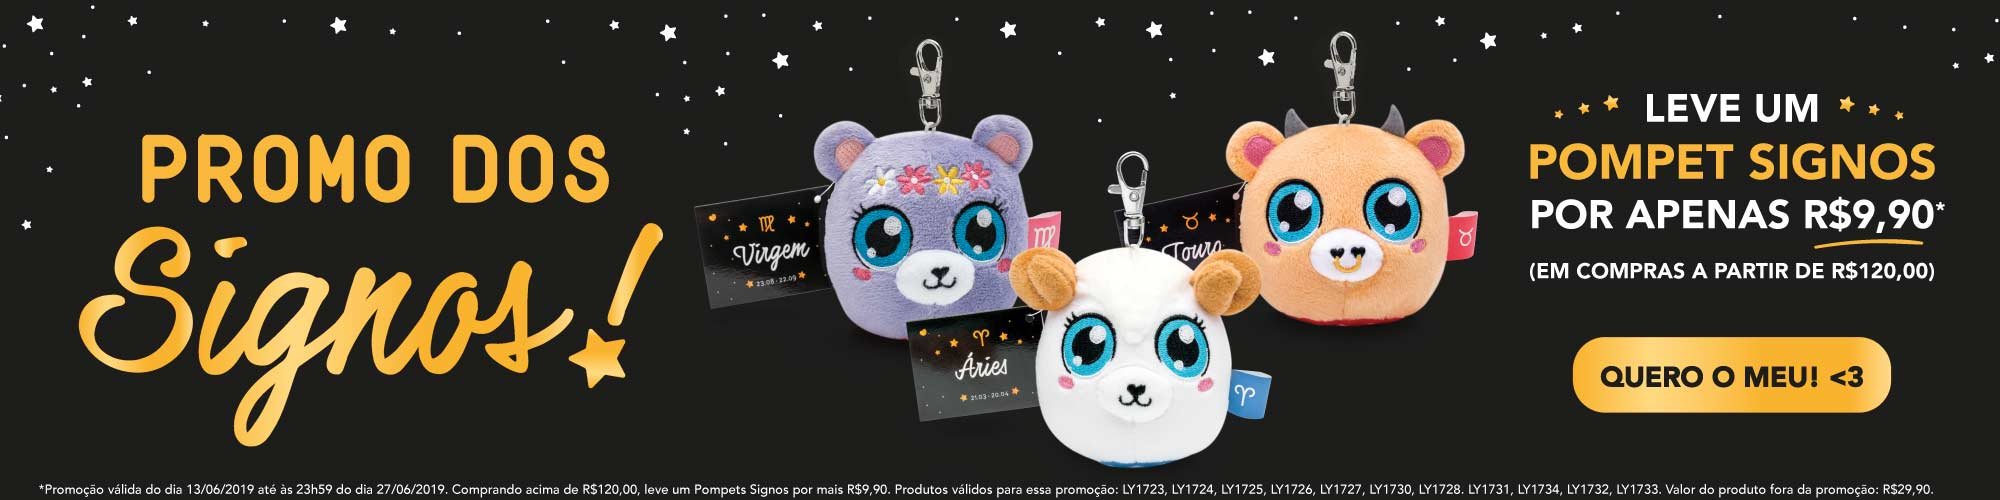 A - CPG Pompets Signos